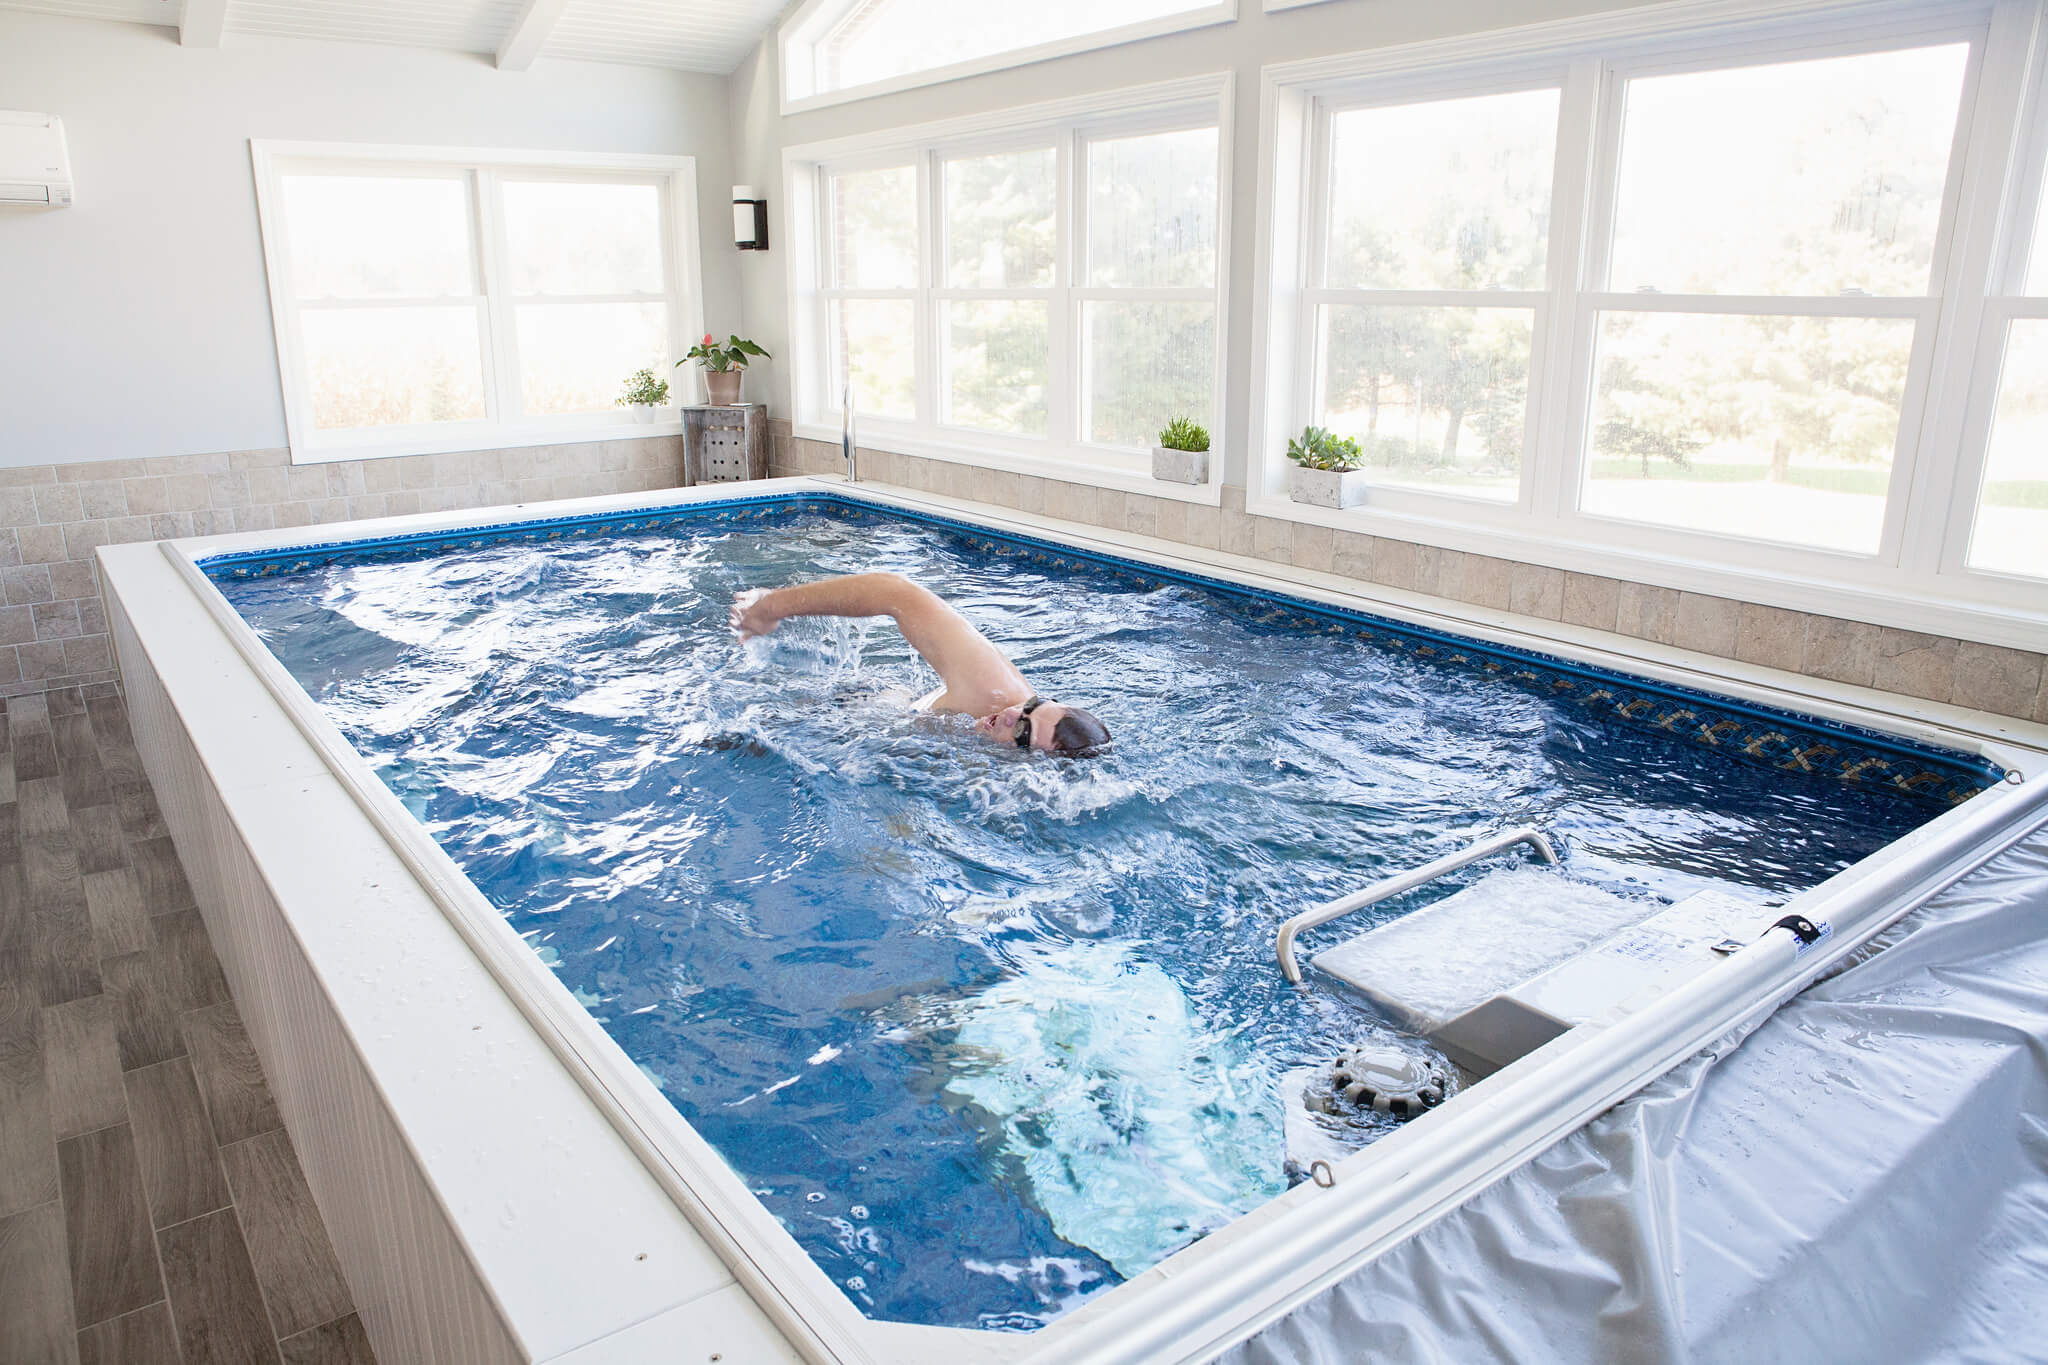 a swimmer swimming in a partially inground Original Endless Pool installed in a sunroom